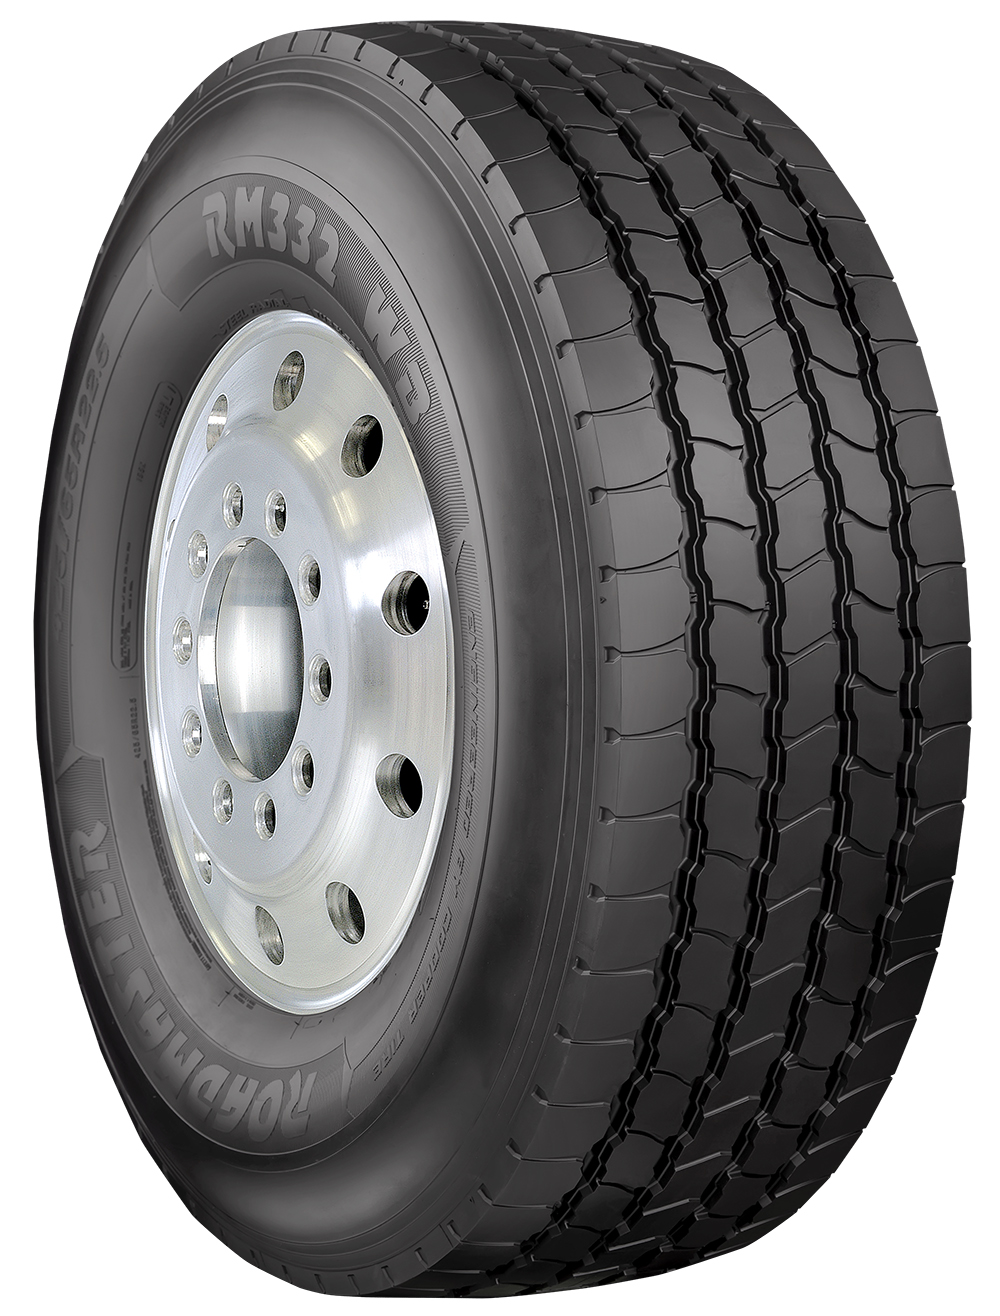 Cooper Expands Roadmaster Line With Wide Base Tire